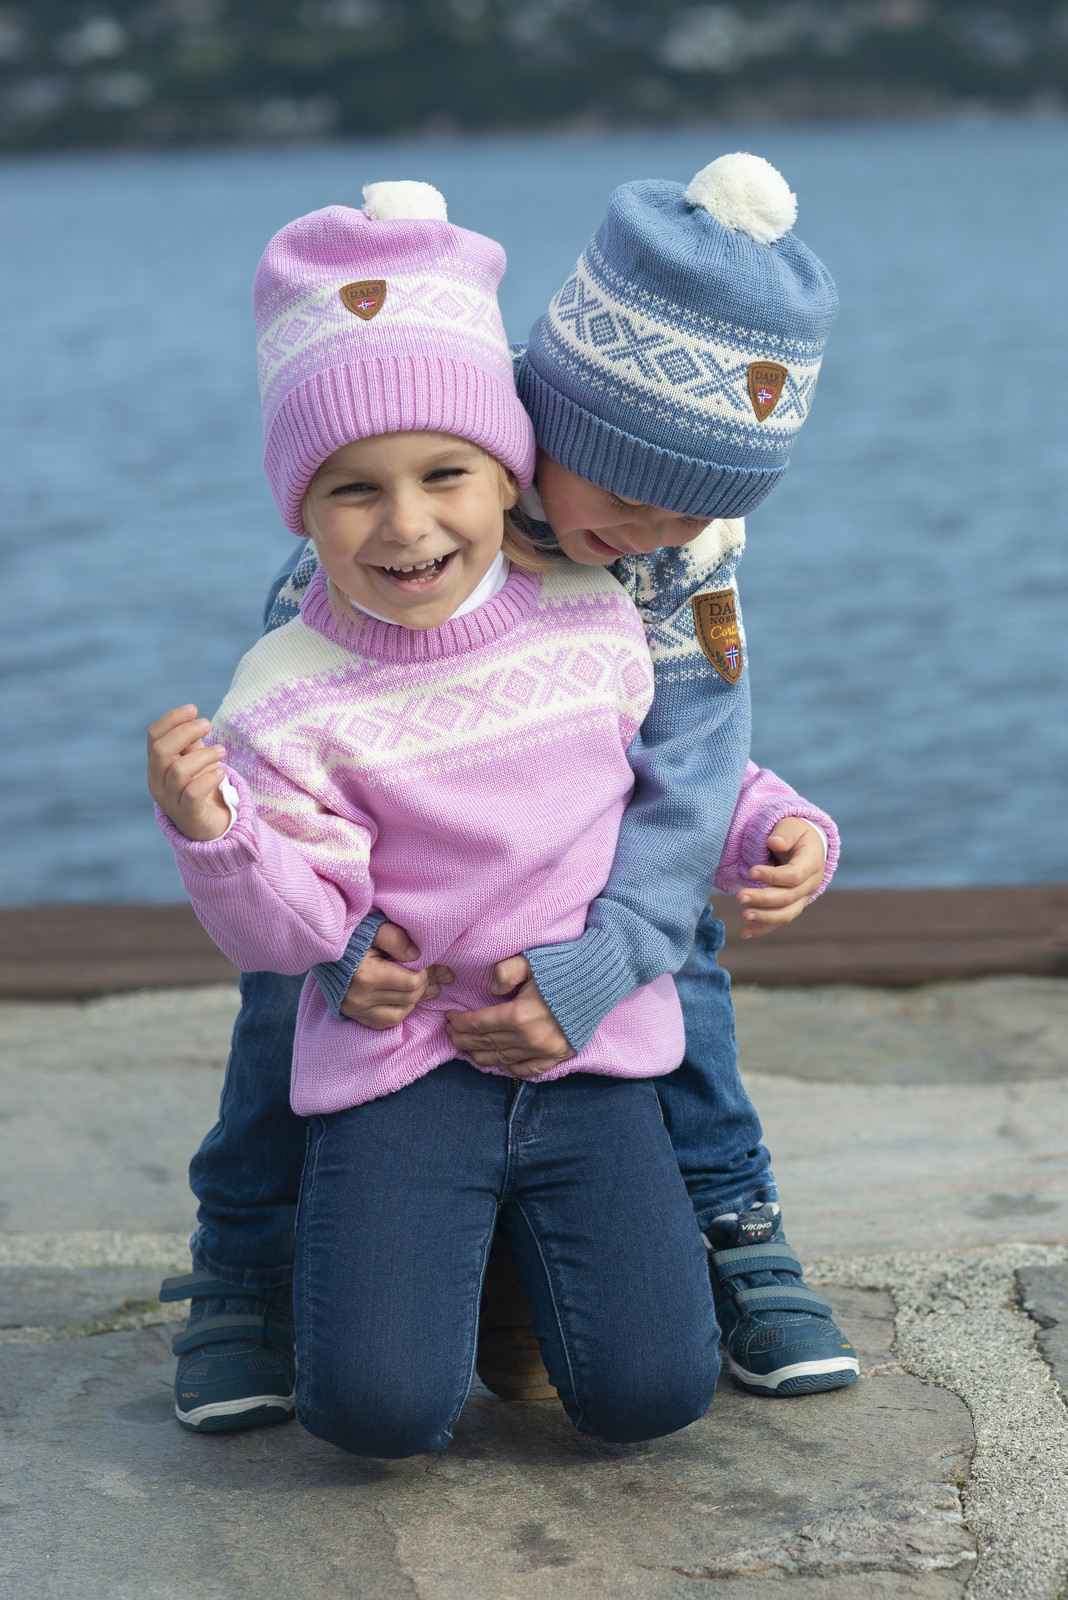 Children showing two colors of the Dale of Norway Cortina kids sweater. The colors are Pink Candy/Off White, 92991-I, and Blue Shadow/Off White, 92991-D